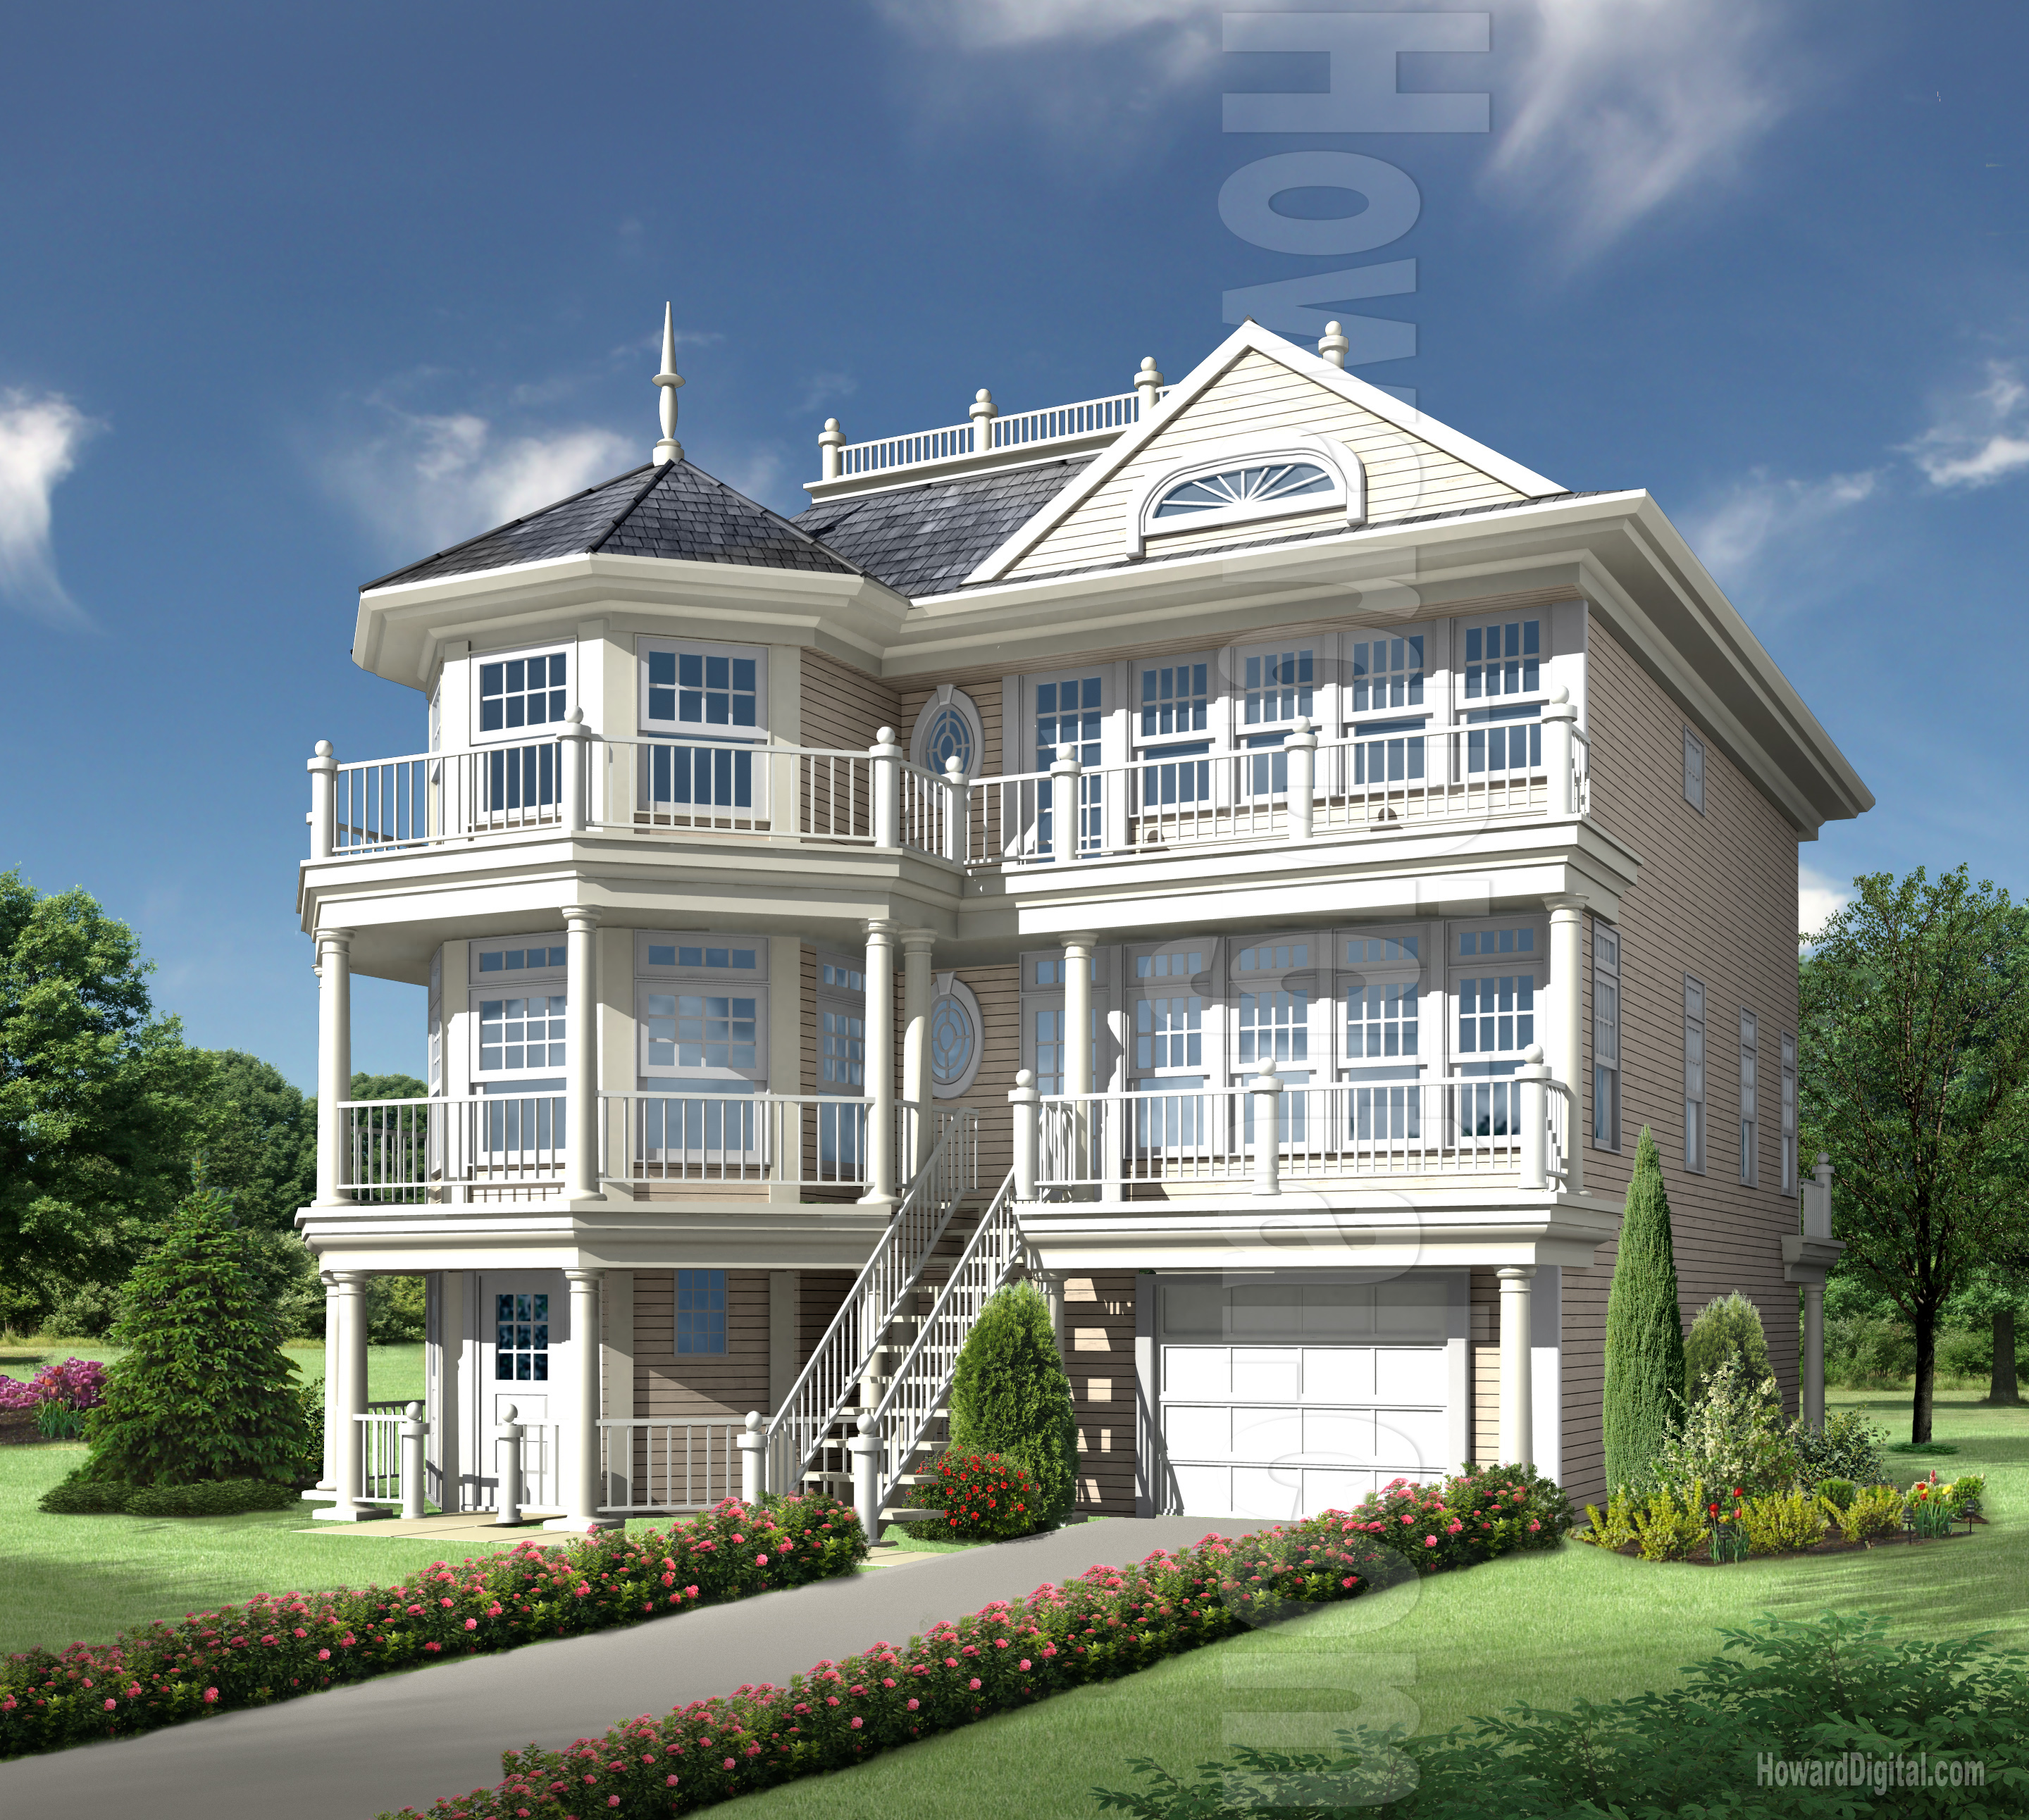 House Rendering - Howard Digital - Rendering